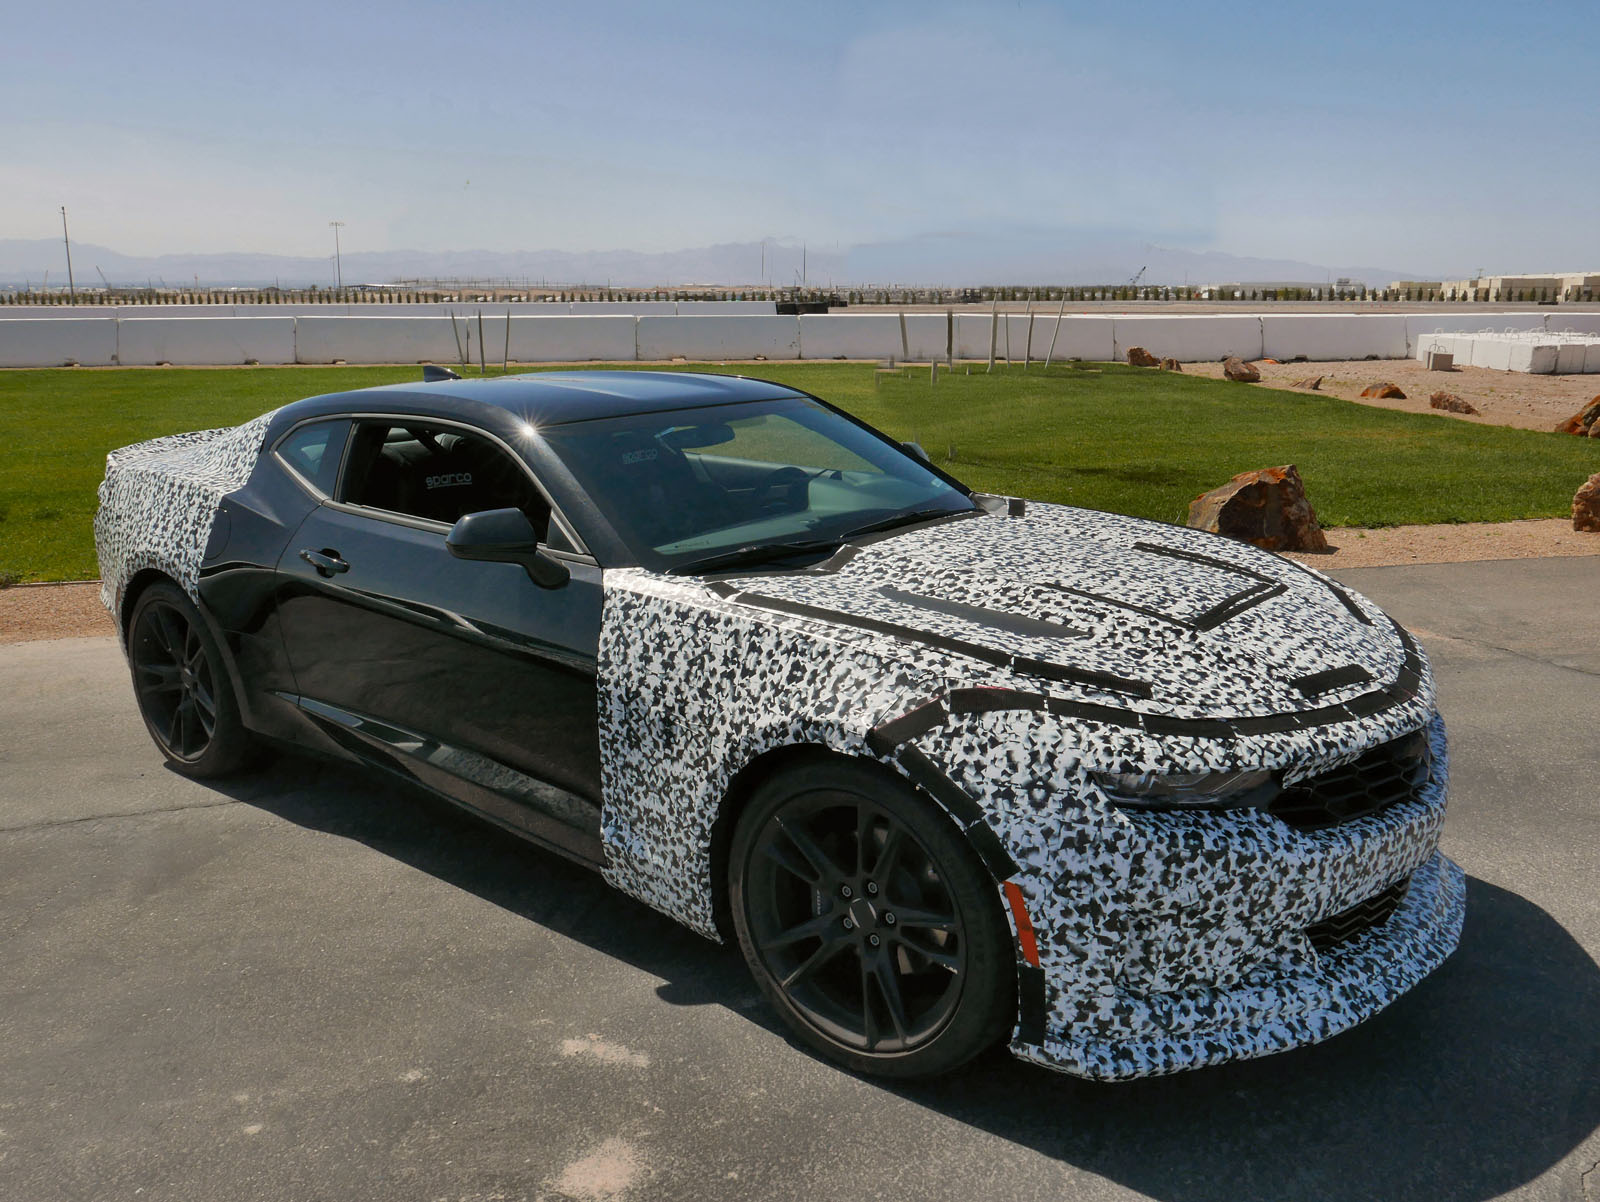 2019 Chevrolet Camaro Turbo 1LE First Drive - GM Inside News